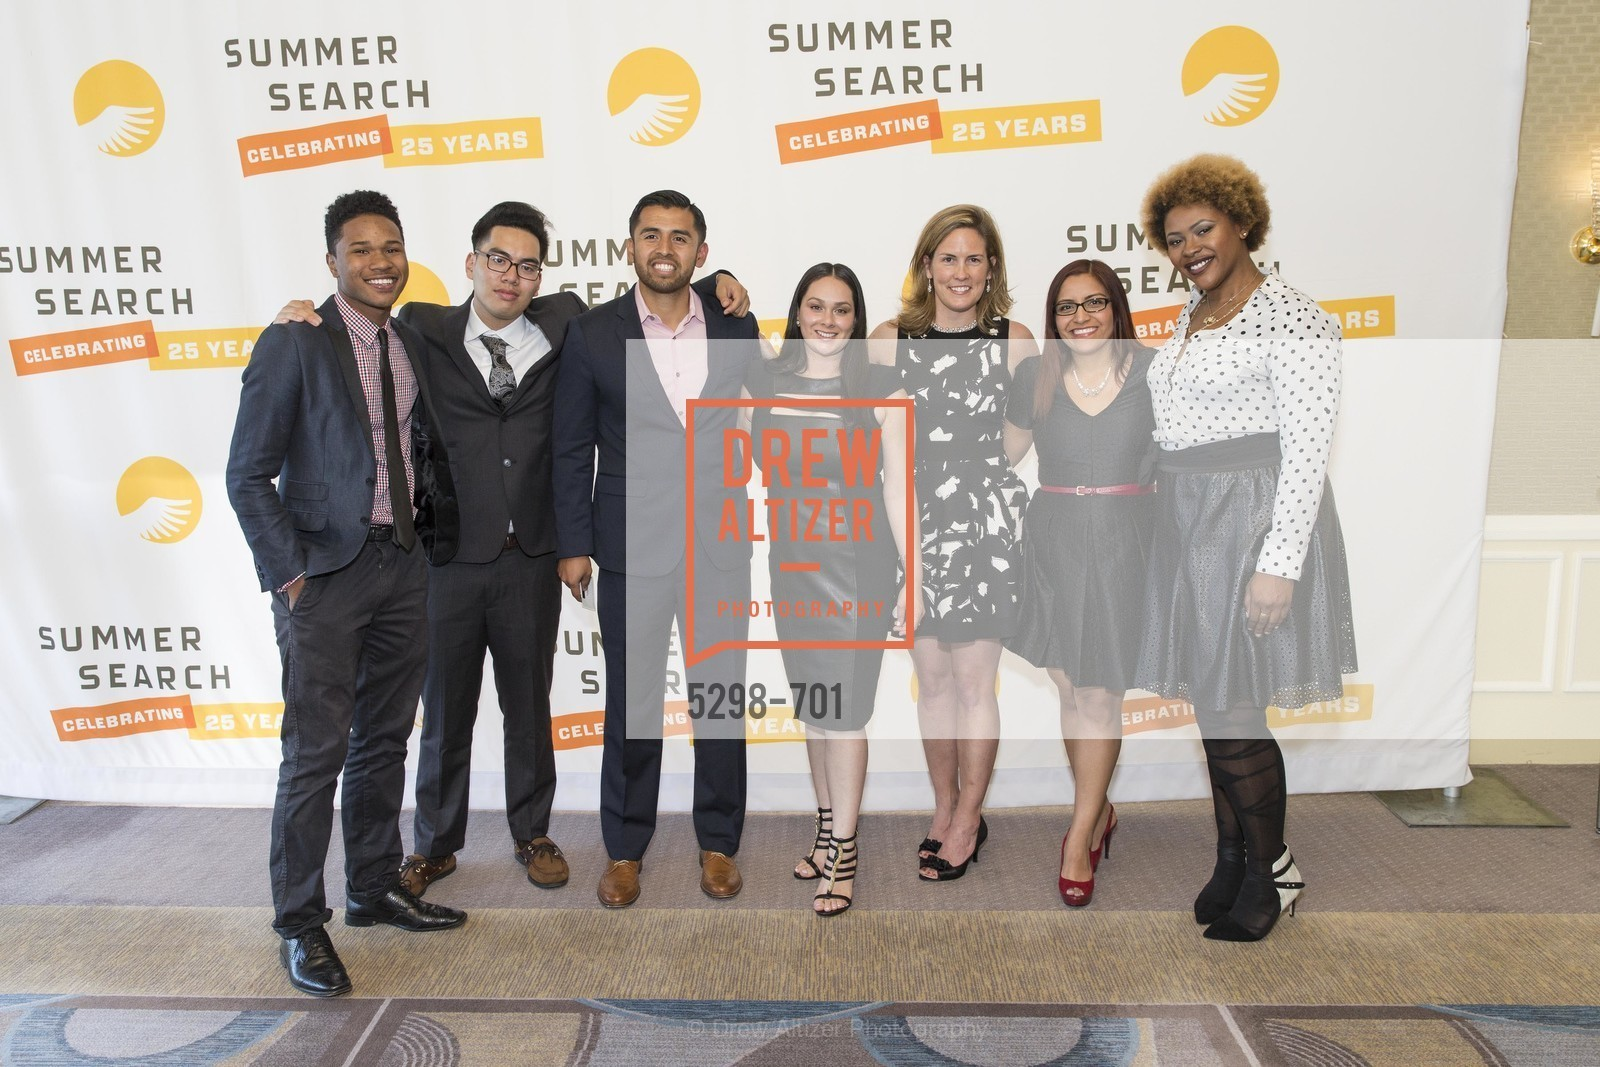 Ibrahim Balde, Josh Dela Cruz, Alejandro Nuno, Marcela Azucar, Lindsay Hower, Ana Baires Mira, Savannah Hudson, SUMMER SEARCH San Francisco 25th Anniversary, US, May 7th, 2015,Drew Altizer, Drew Altizer Photography, full-service agency, private events, San Francisco photographer, photographer california